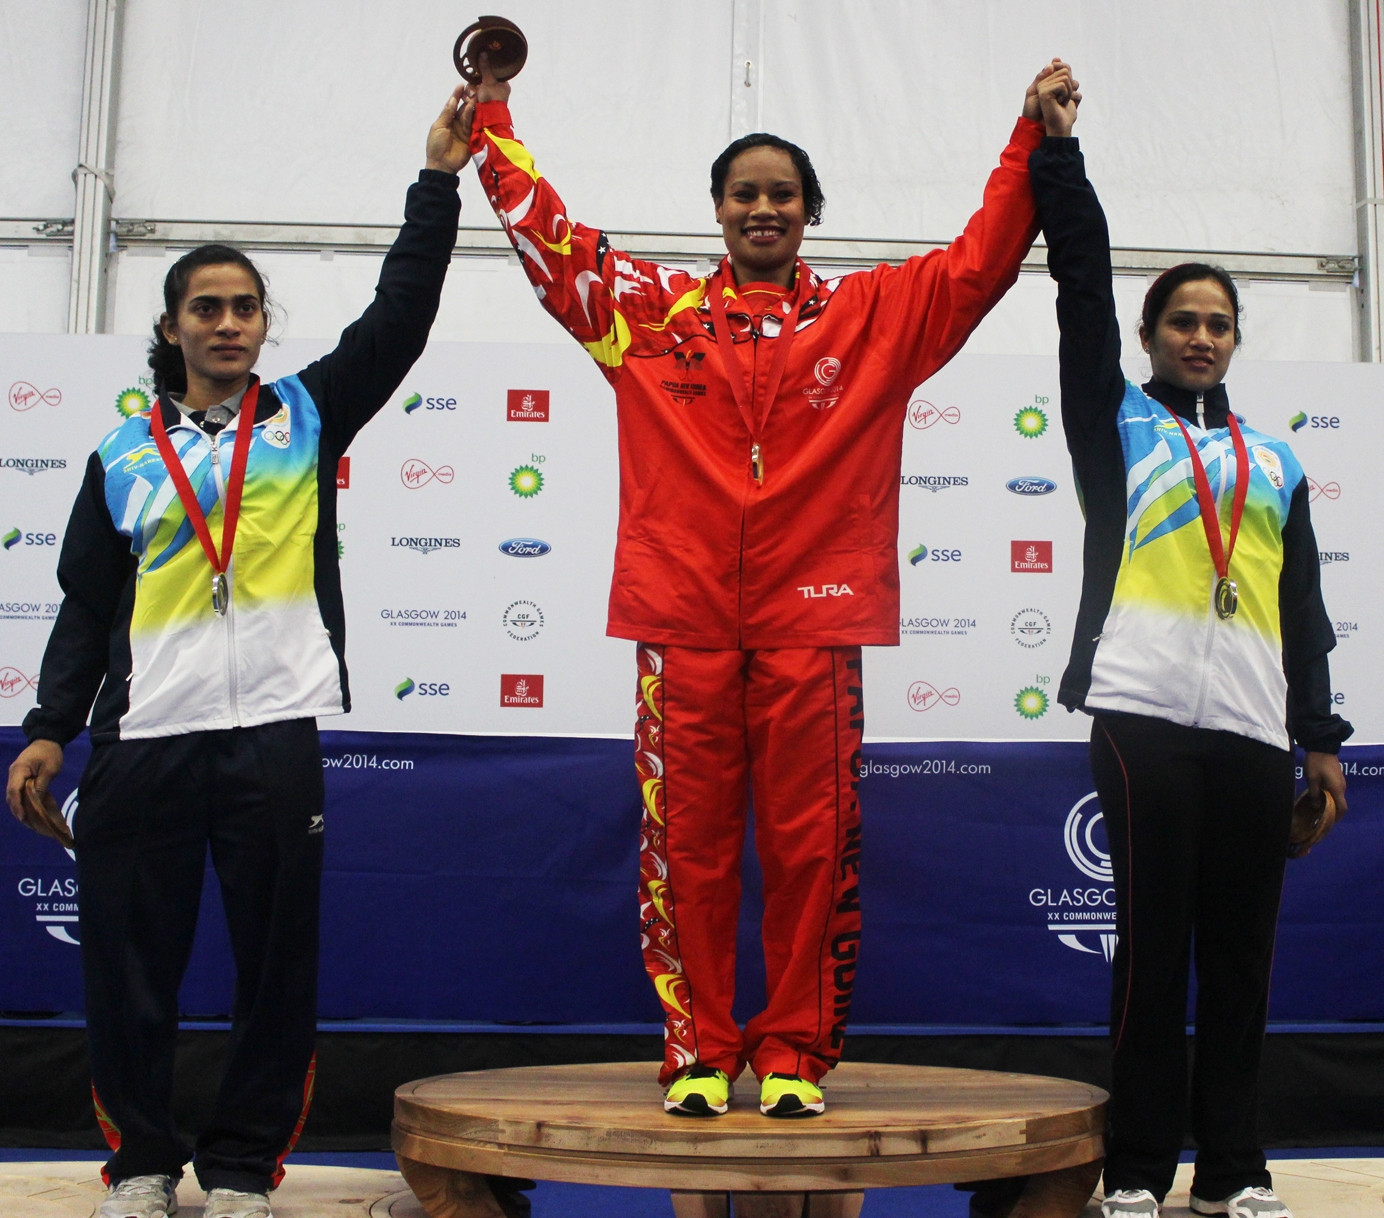 Celebrating a gold medal at Glasgow 2014 ©Oceania Weightlifting Institute